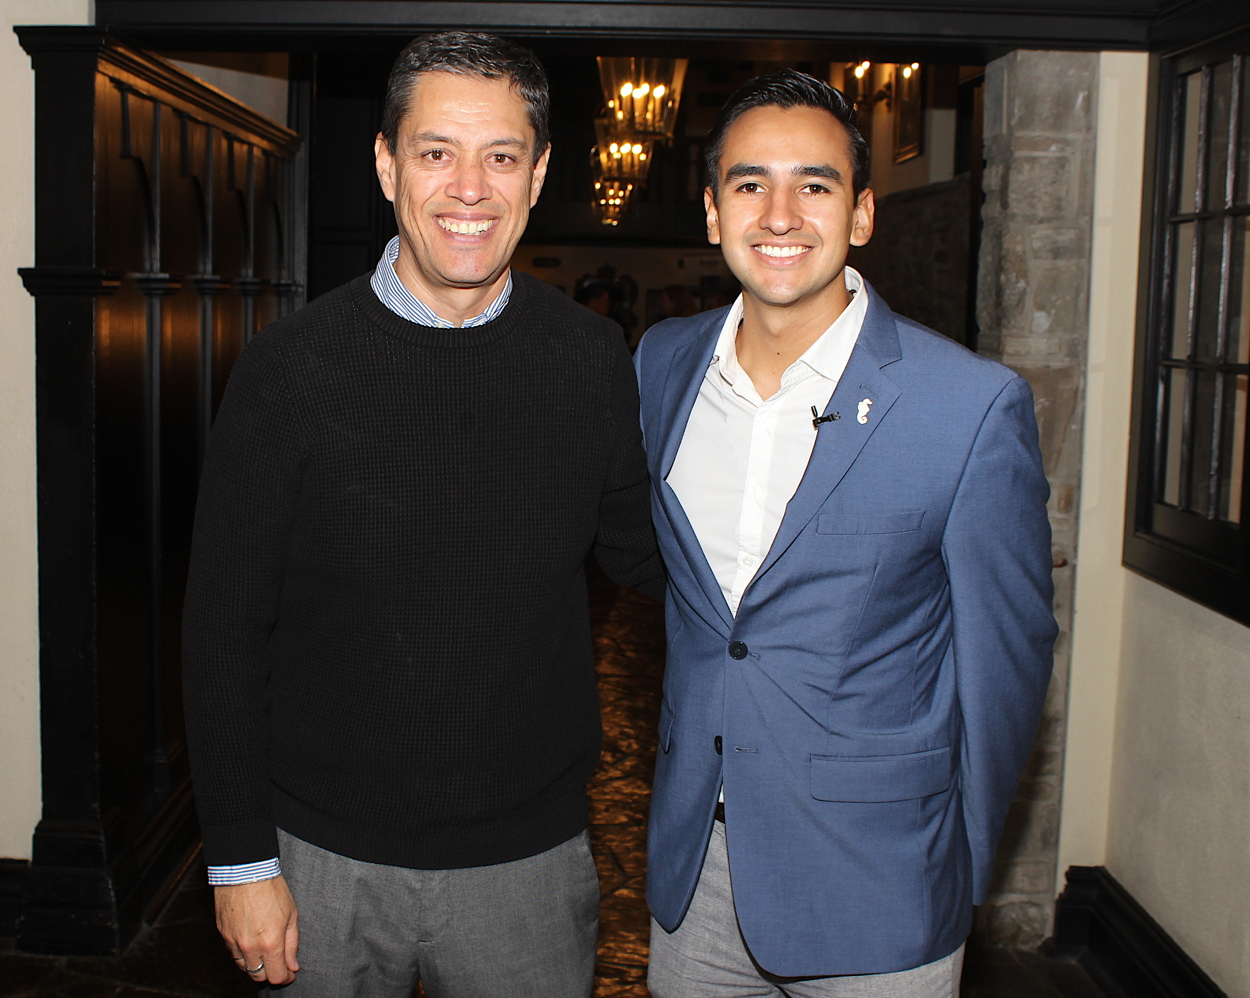 TEAMWORK. Carlos Eguiarte (left) of the Riviera Nayarit Visitors and Conventions Bureau with Jorge Rodriguez of the Puerto Vallarta Tourism Board in Toronto.